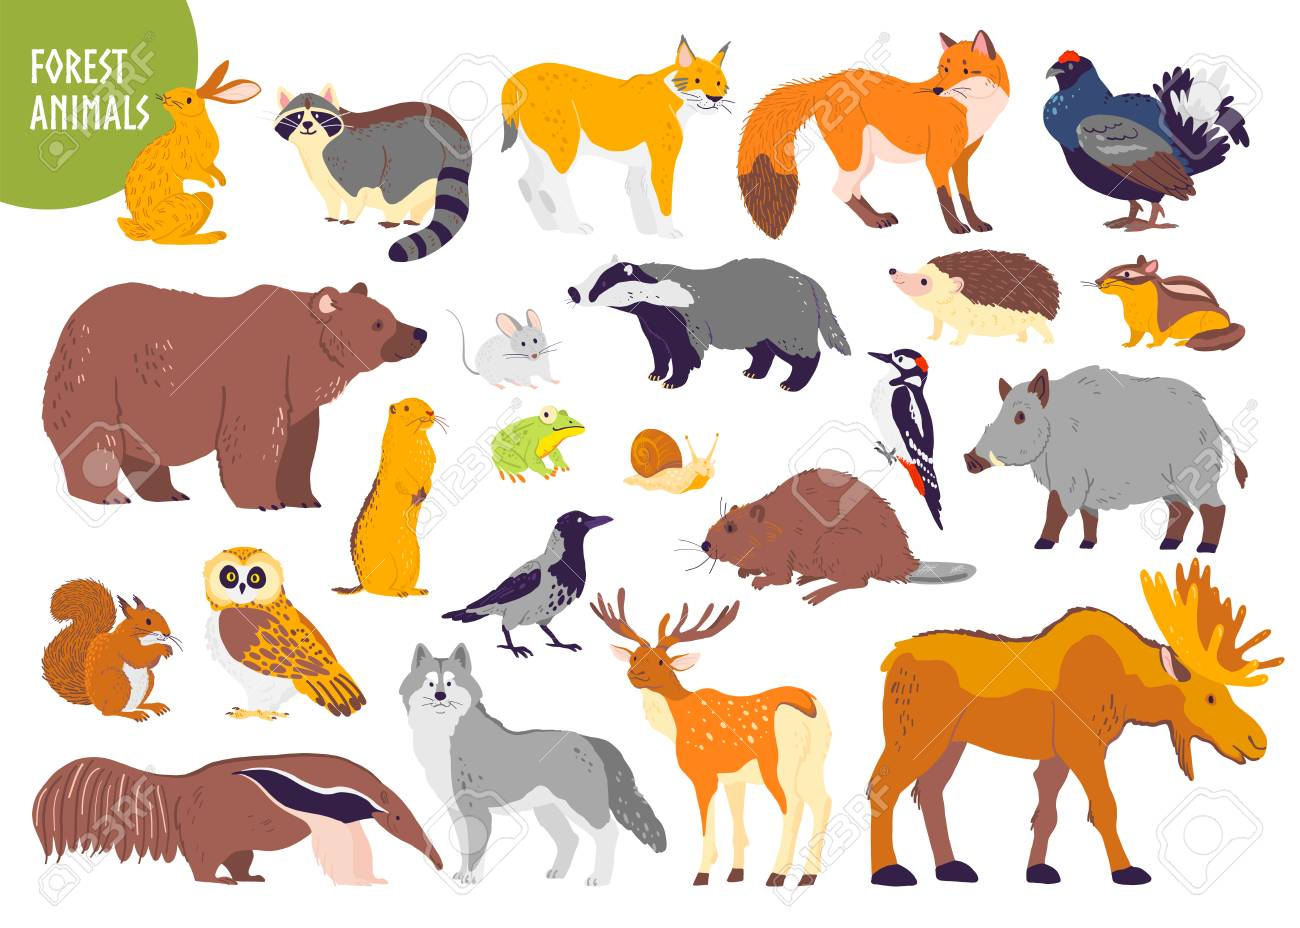 Vector collection of forest animals and birds: bear, fox, hare, owl isolated on white background. Flat hand drawn style. Good for children book illustration, alphabet, woodland banner, zoo emblem etc. - 124732792